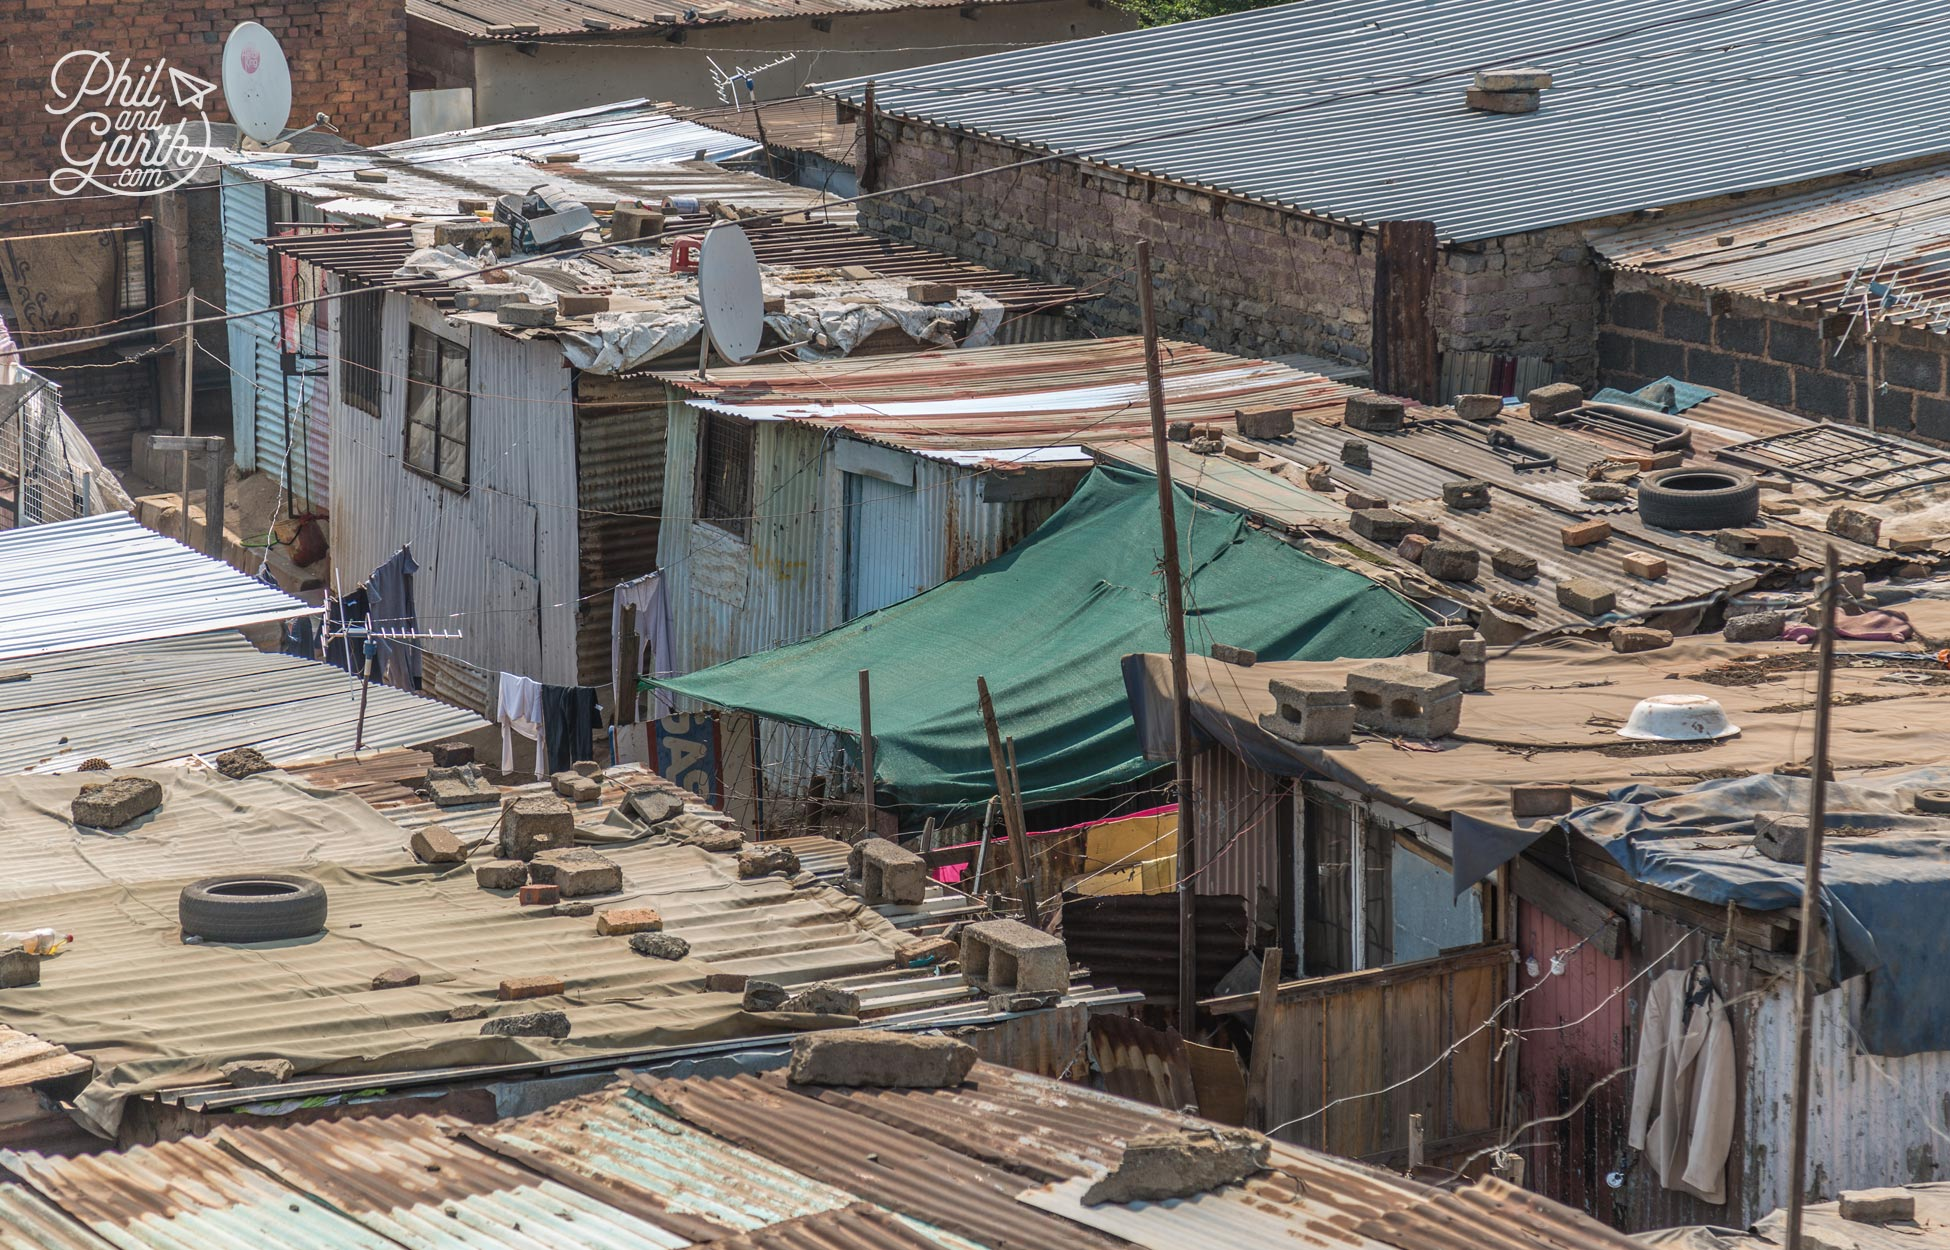 Homes in the Kliptown township